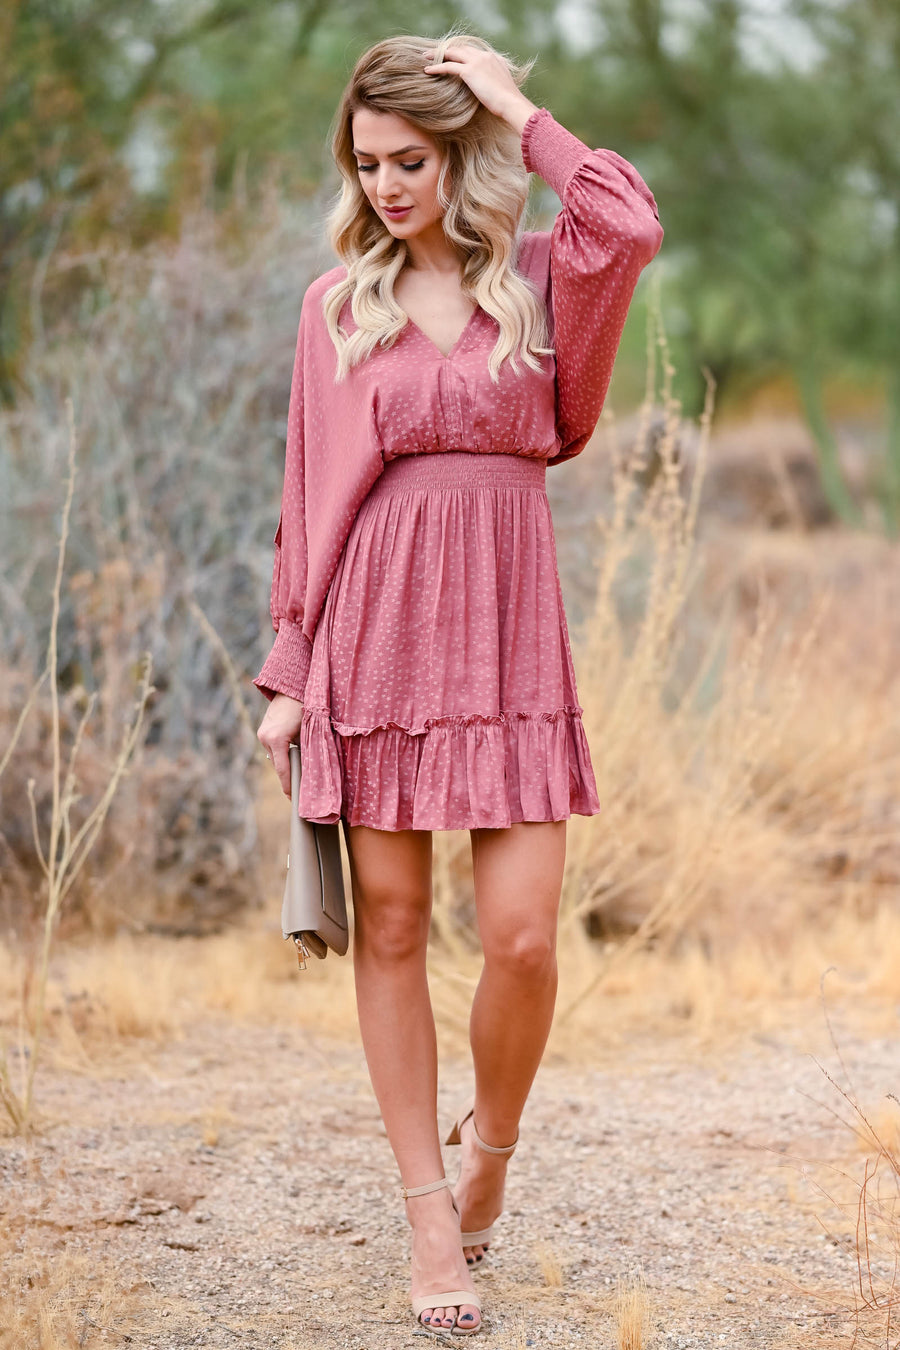 LOVE STITCH Starry Night Mini Dress - Dusty Rose womens woven mini dress smocked cuffs and waistband, ruffle trim and open back closet candy close up